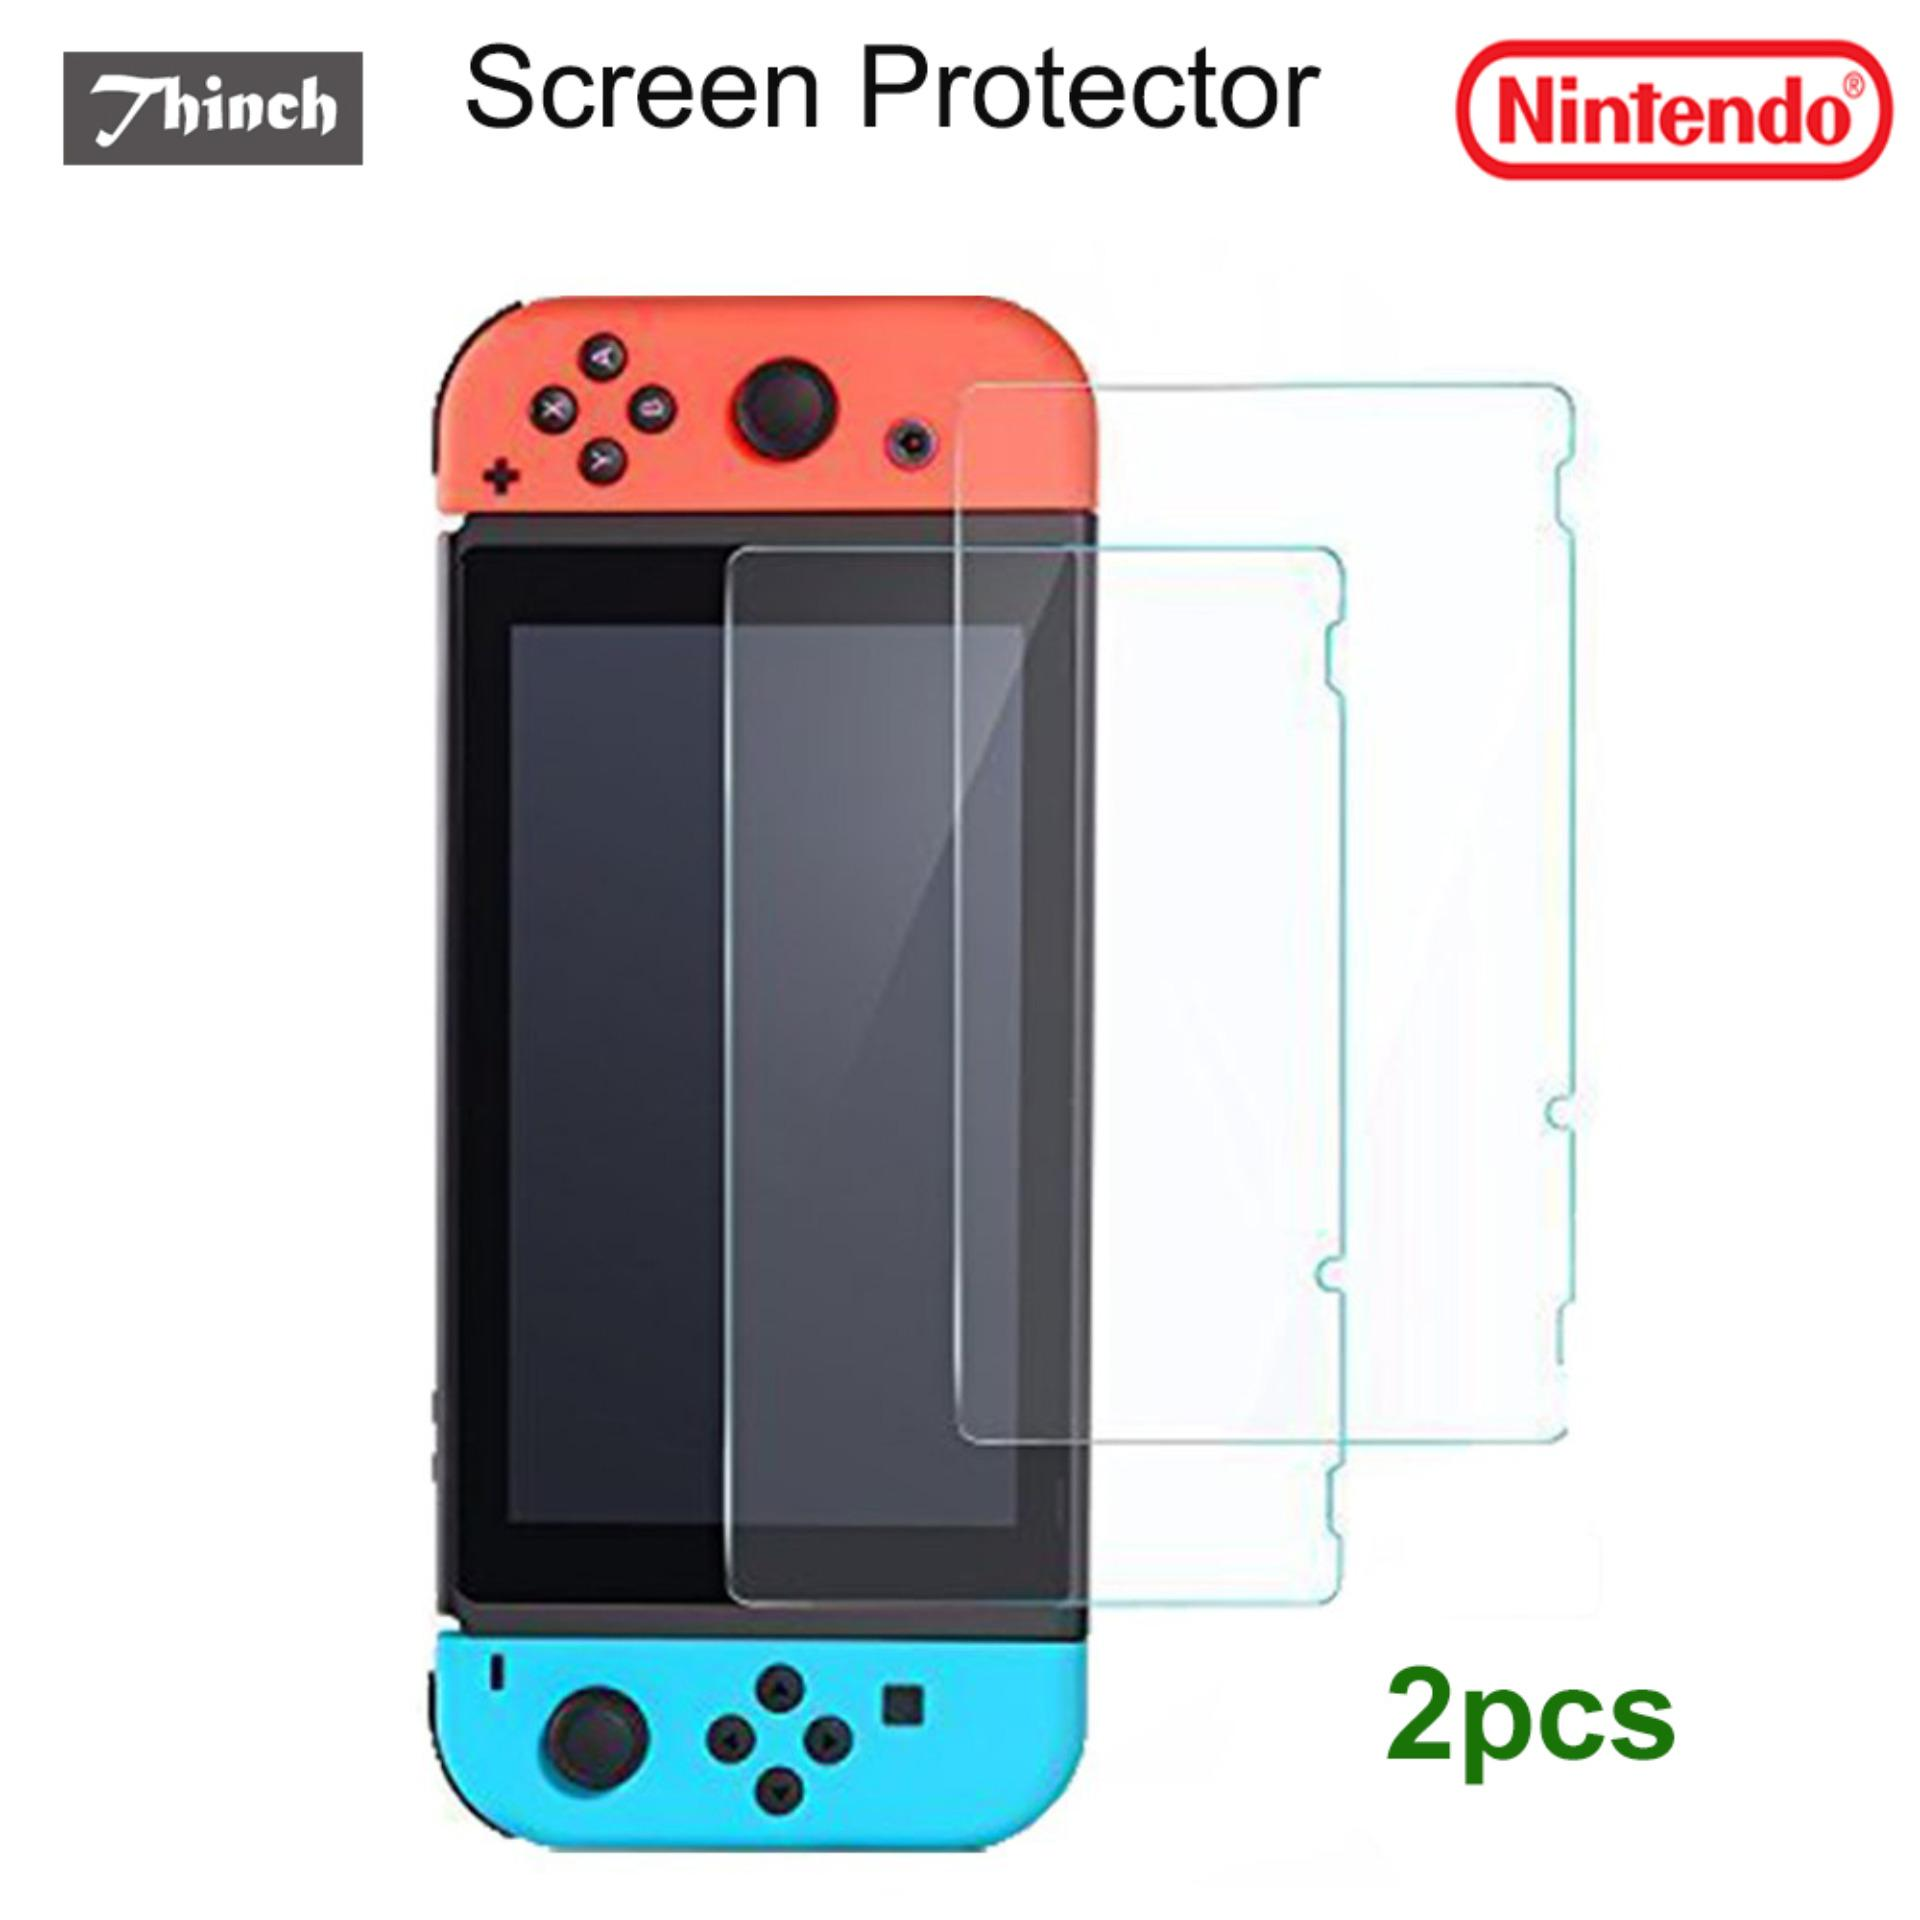 Onsale 2 Pcs Tempered Glass Thin Screen Protector Film Cover